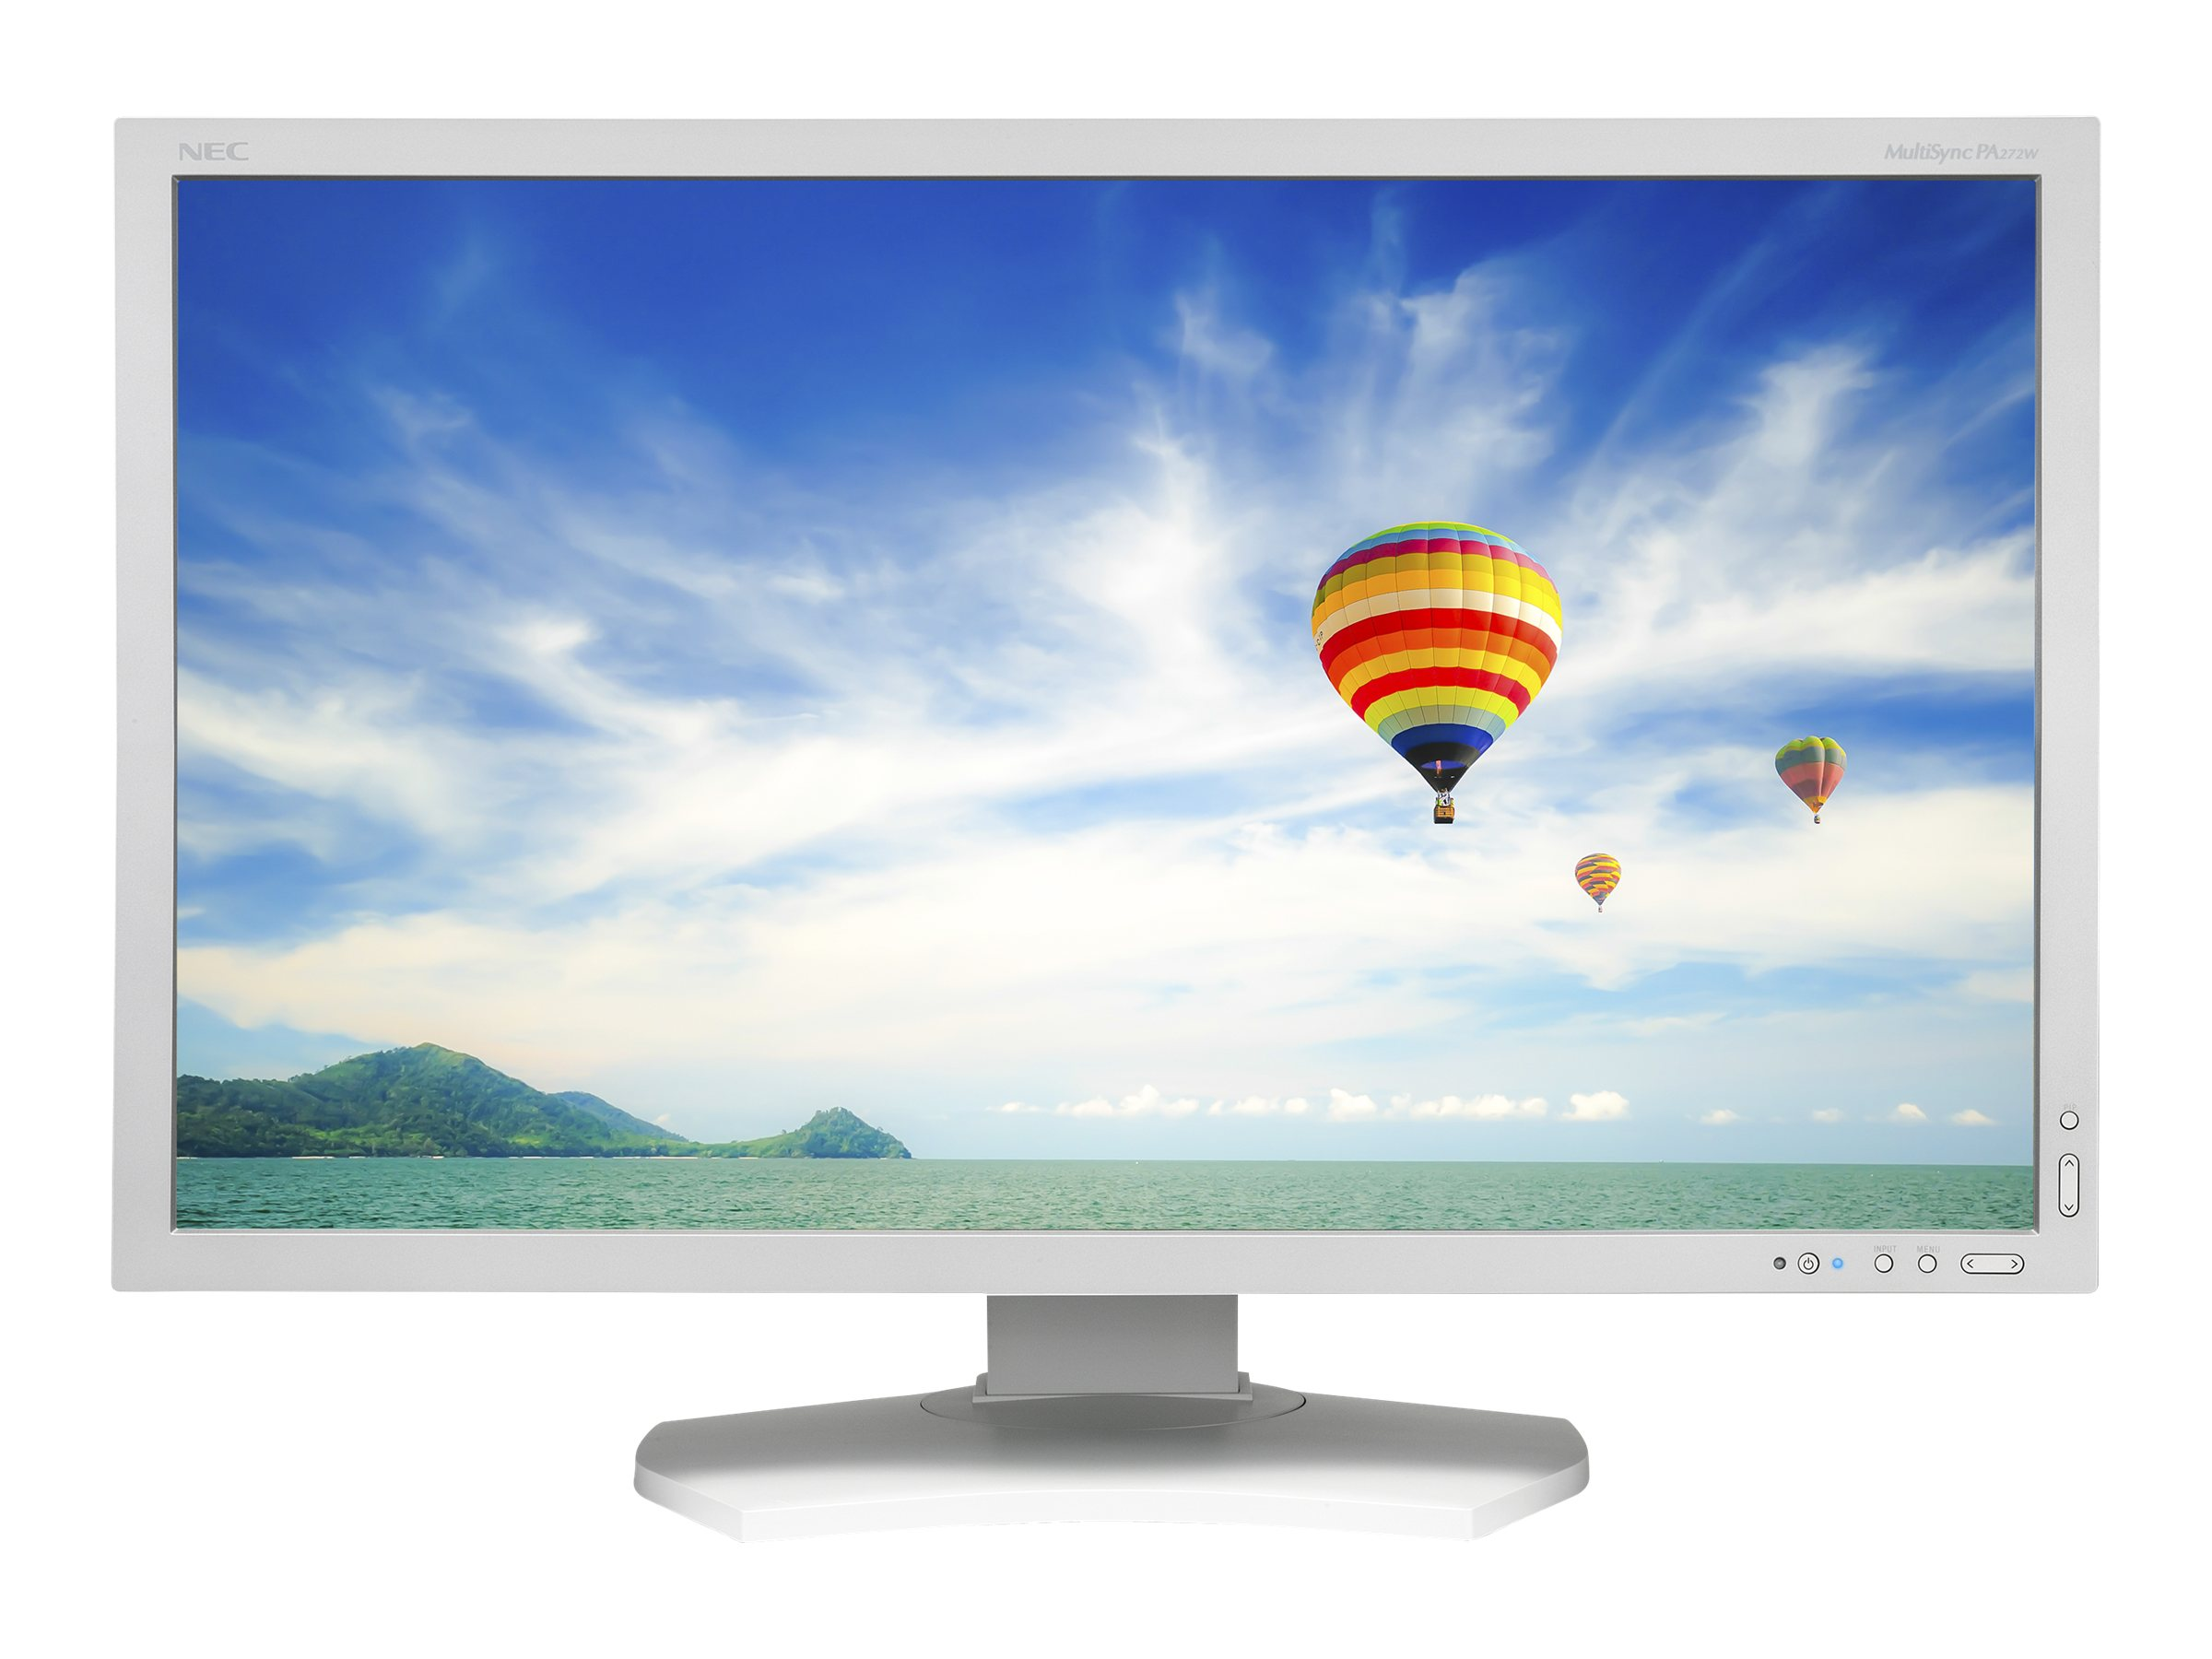 NEC 27 PA272W LED-LCD Monitor, White, PA272W, 16349426, Monitors - LED-LCD